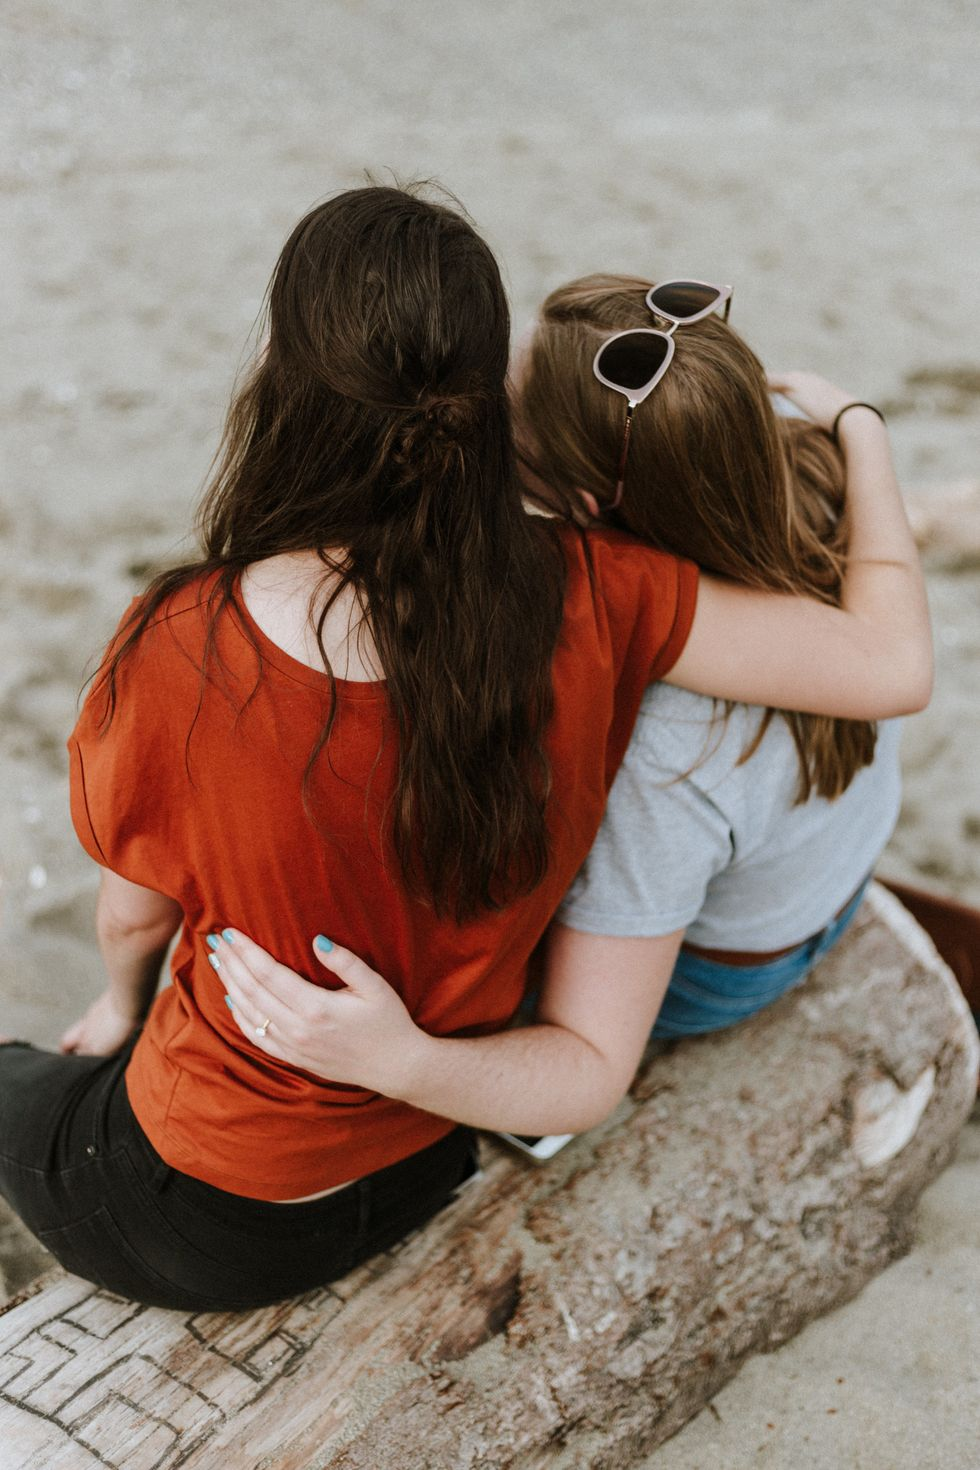 Stop Assuming Your Queer Friends Are Going To End Up Falling For You